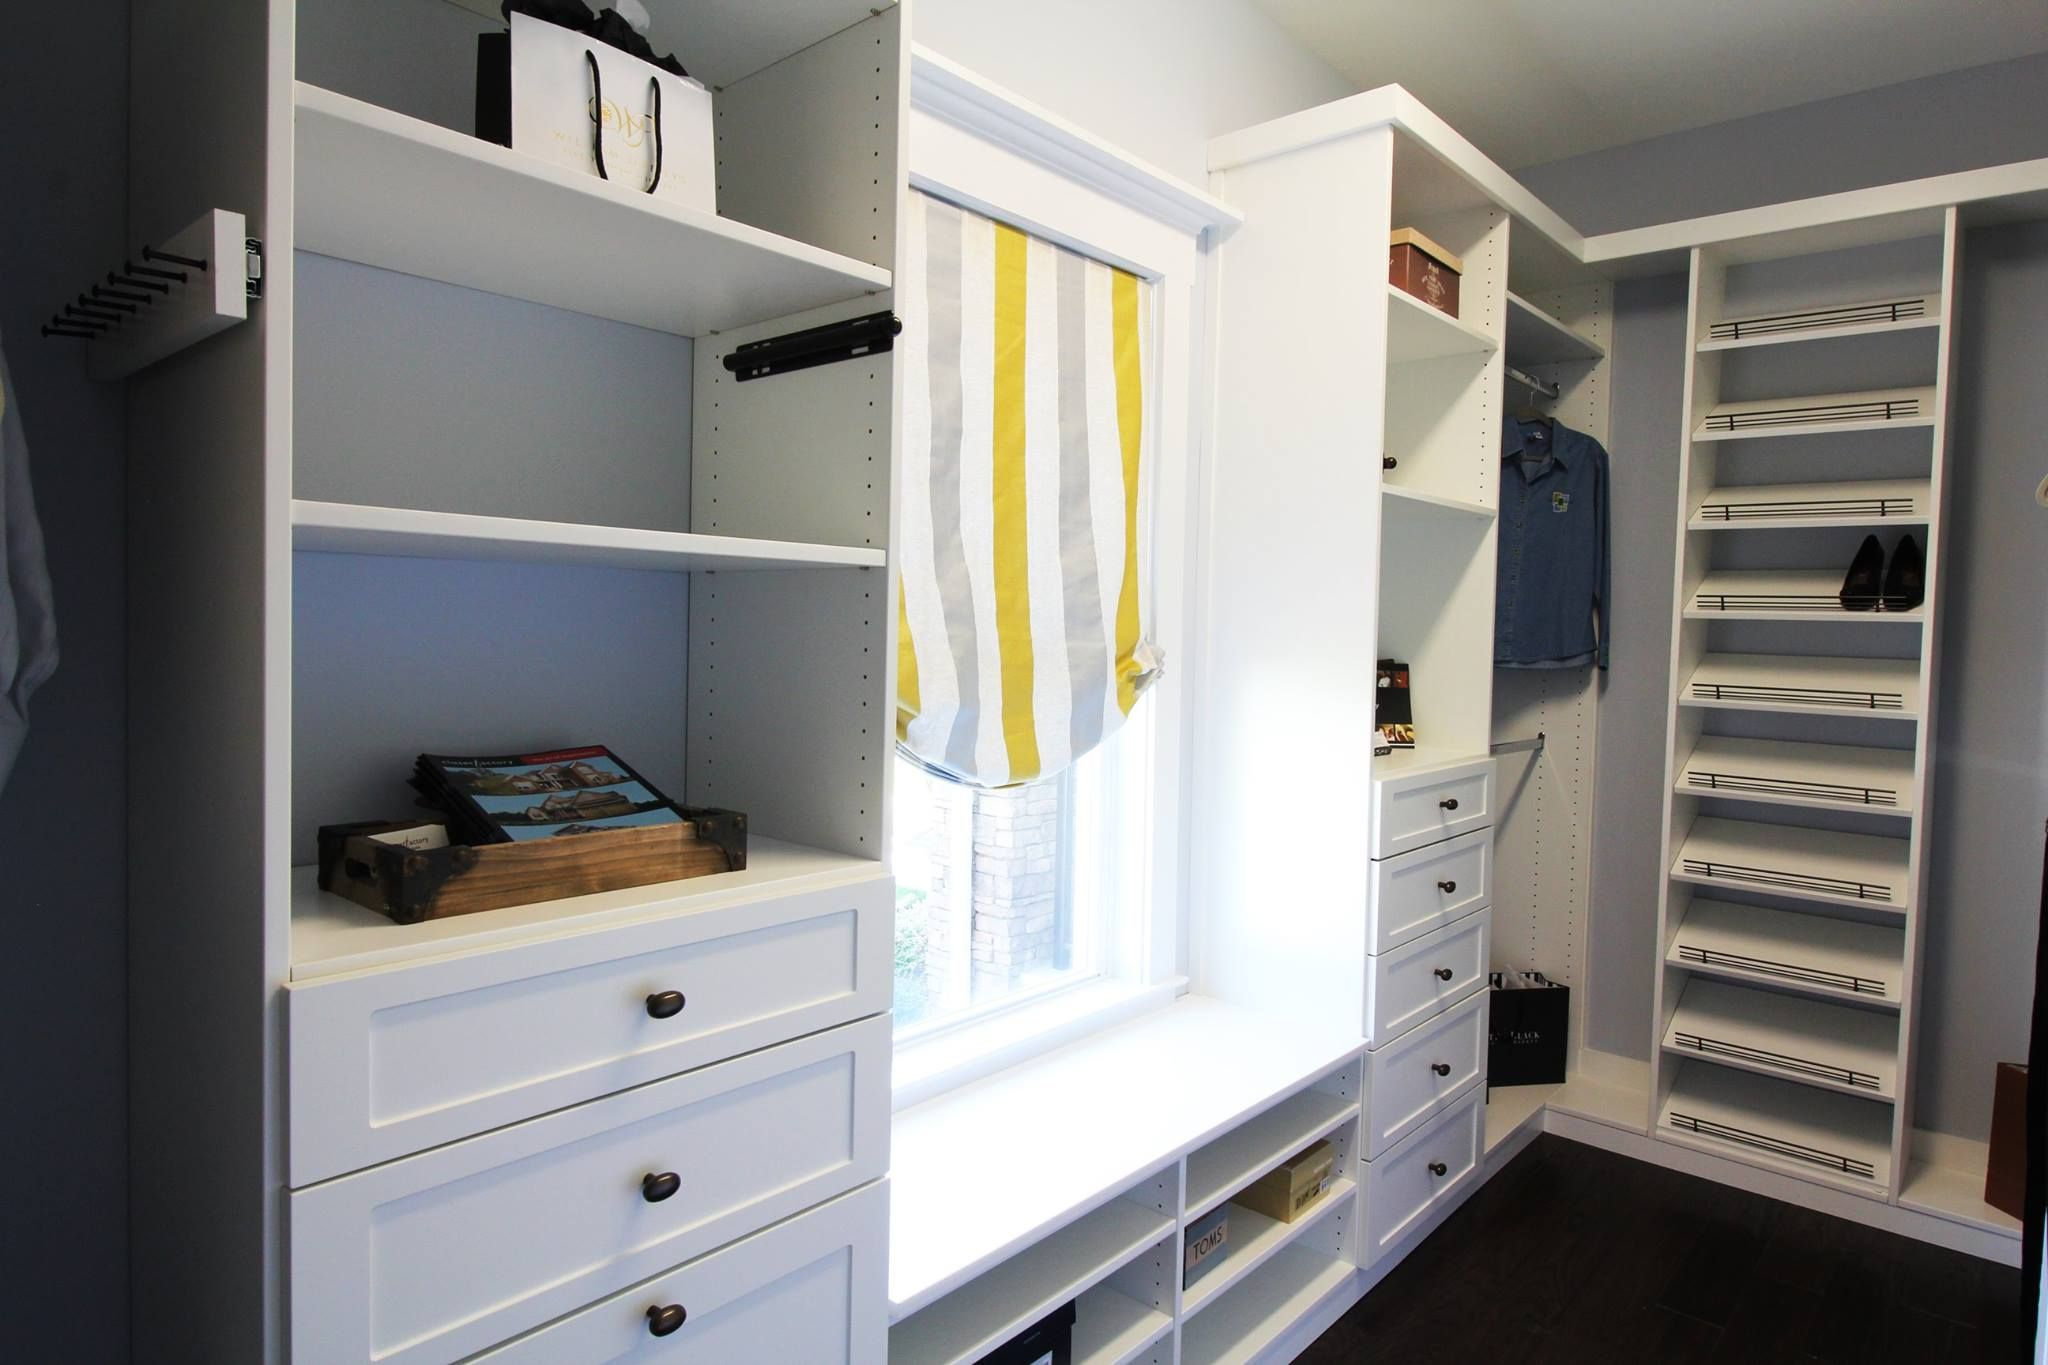 pin by closet factory on walk in closet organizers chest of drawers design modular closets. Black Bedroom Furniture Sets. Home Design Ideas